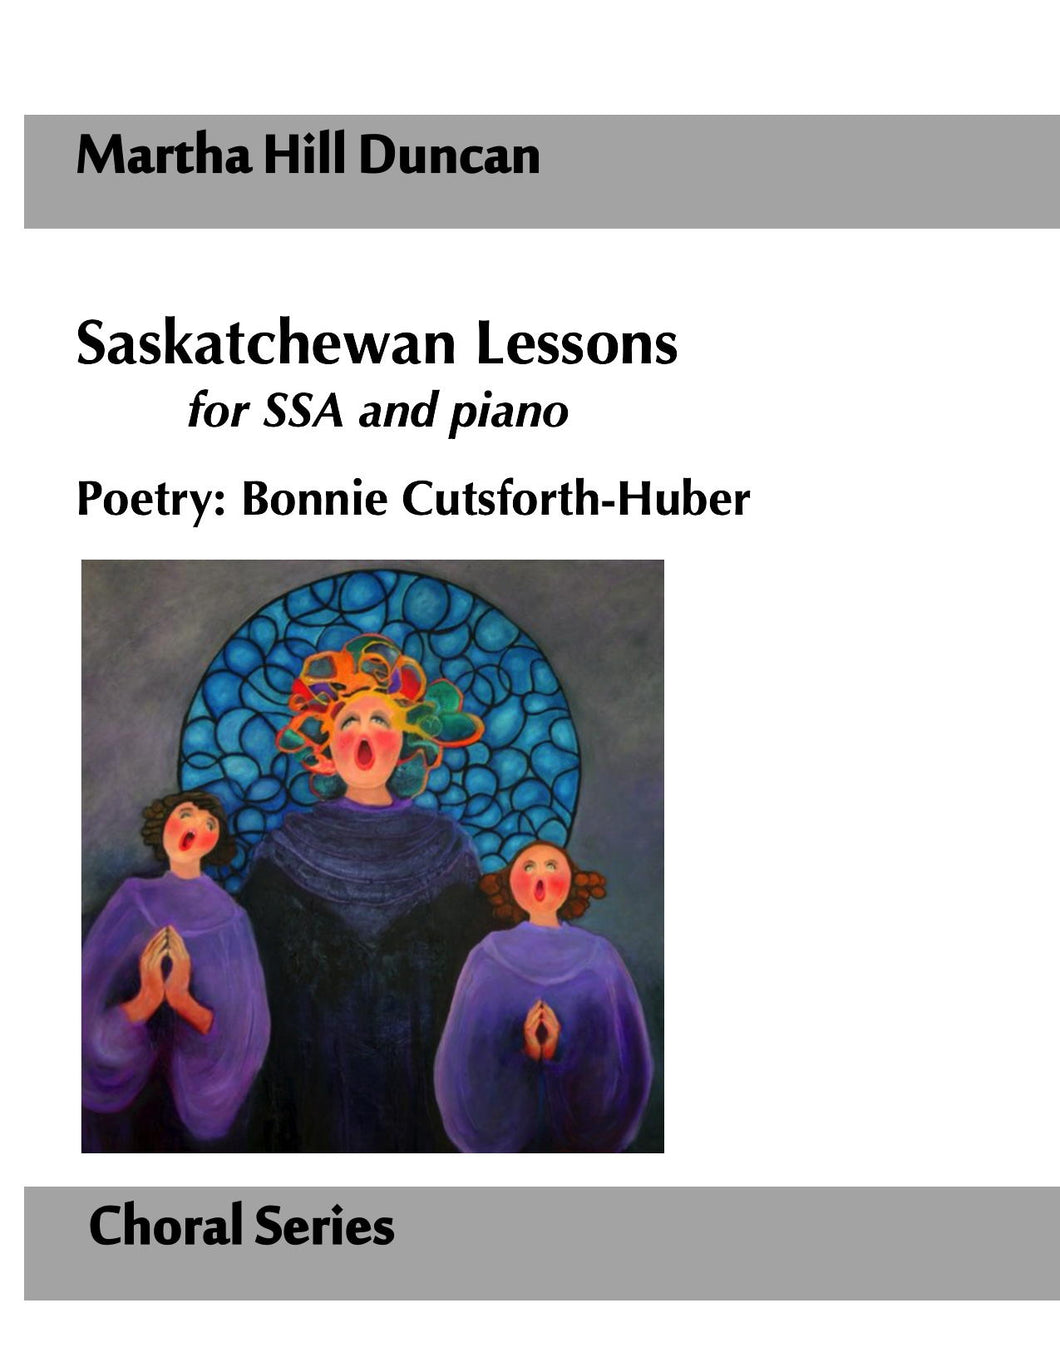 SASKATCHEWAN LESSONS FOR SSA AND PIANO